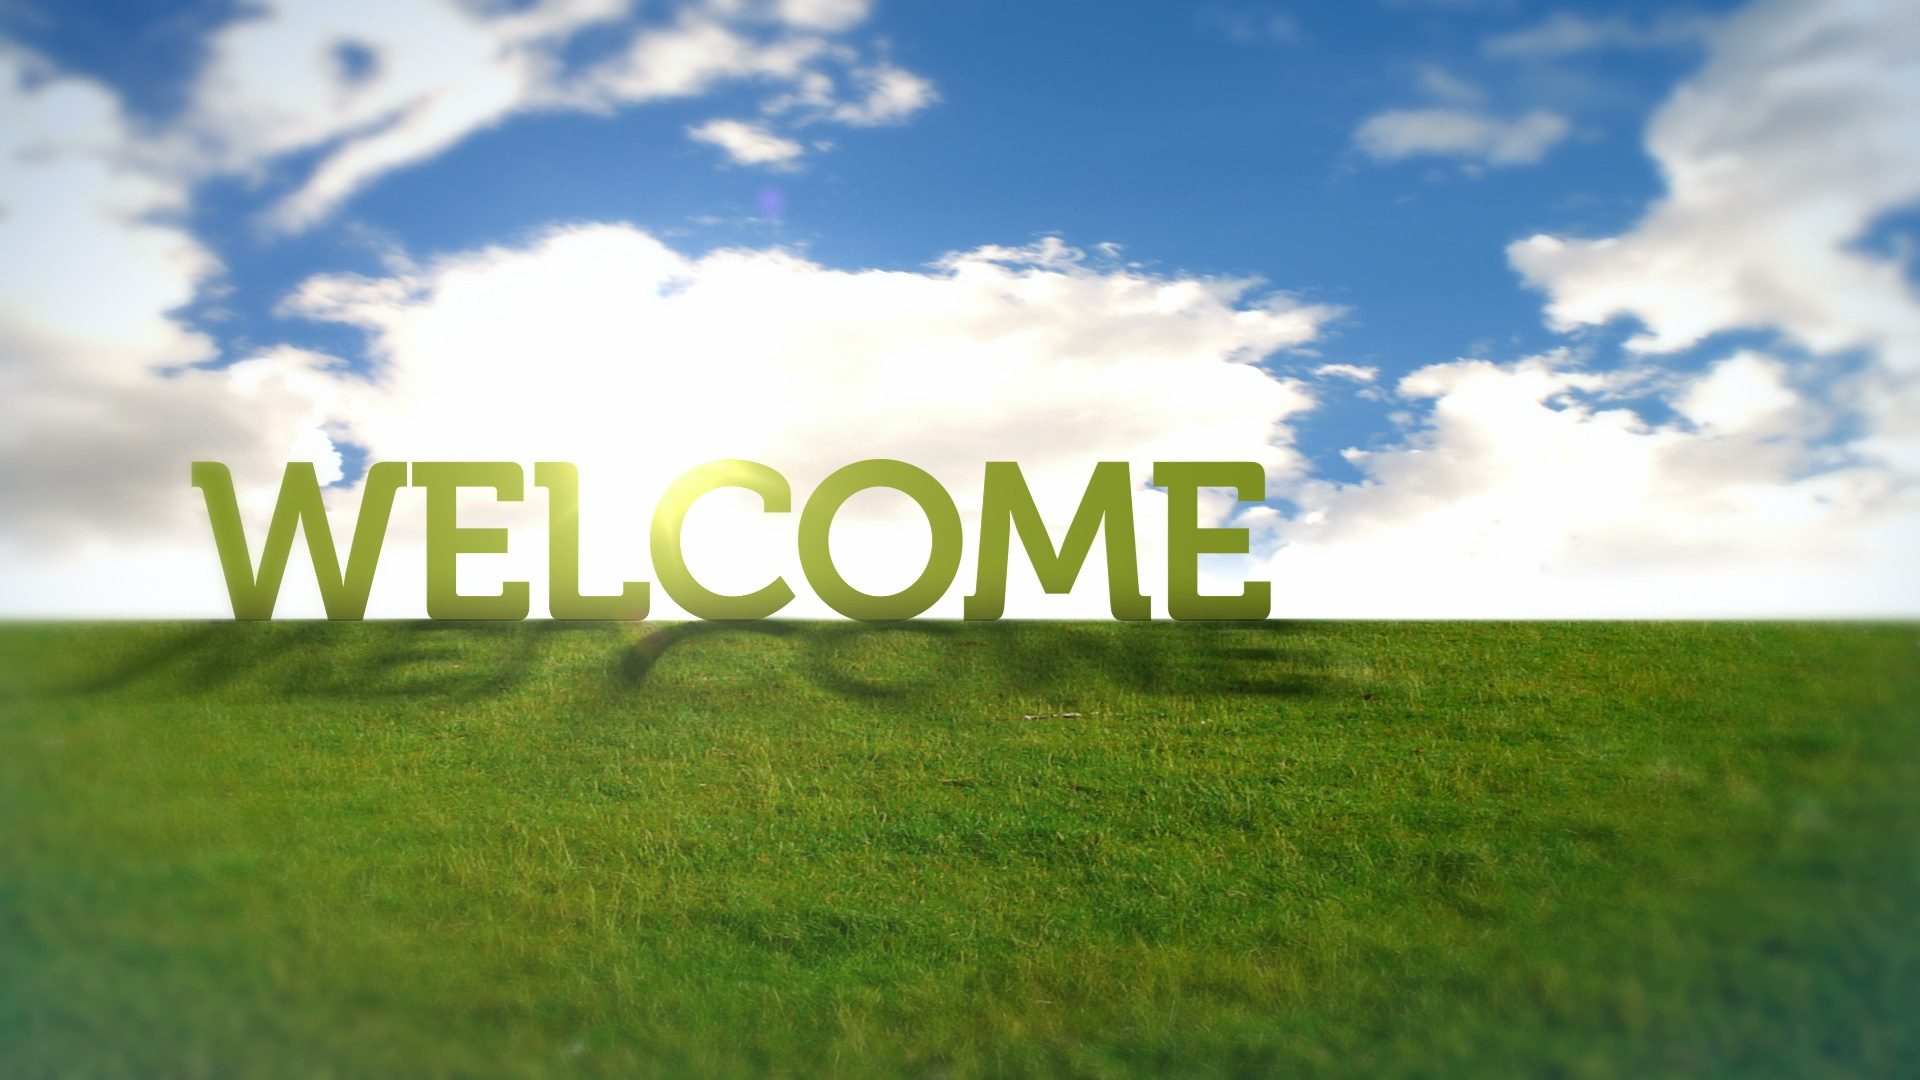 welcome backgrounds for church bing images